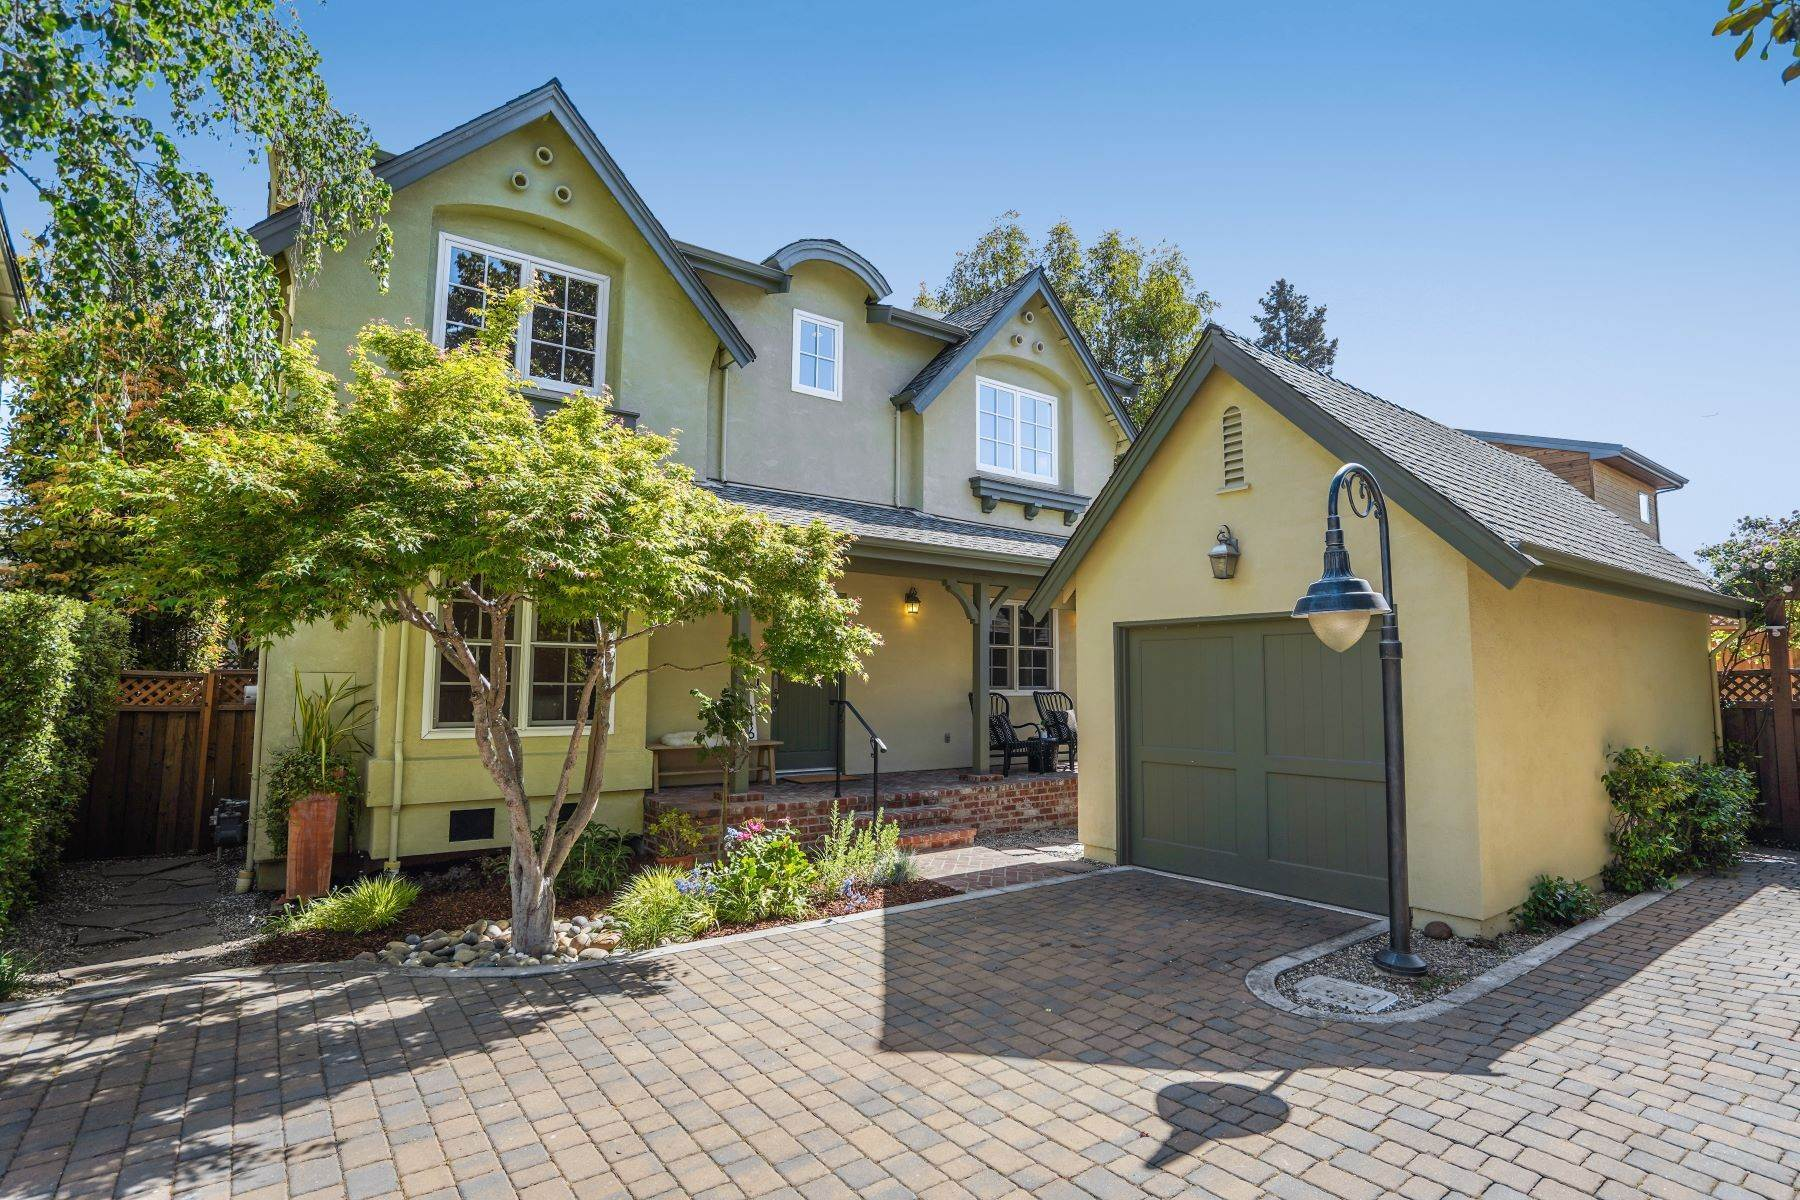 Single Family Homes for Sale at Menlo Park Downtown Living 1246 Hoover Street Menlo Park, California 94025 United States